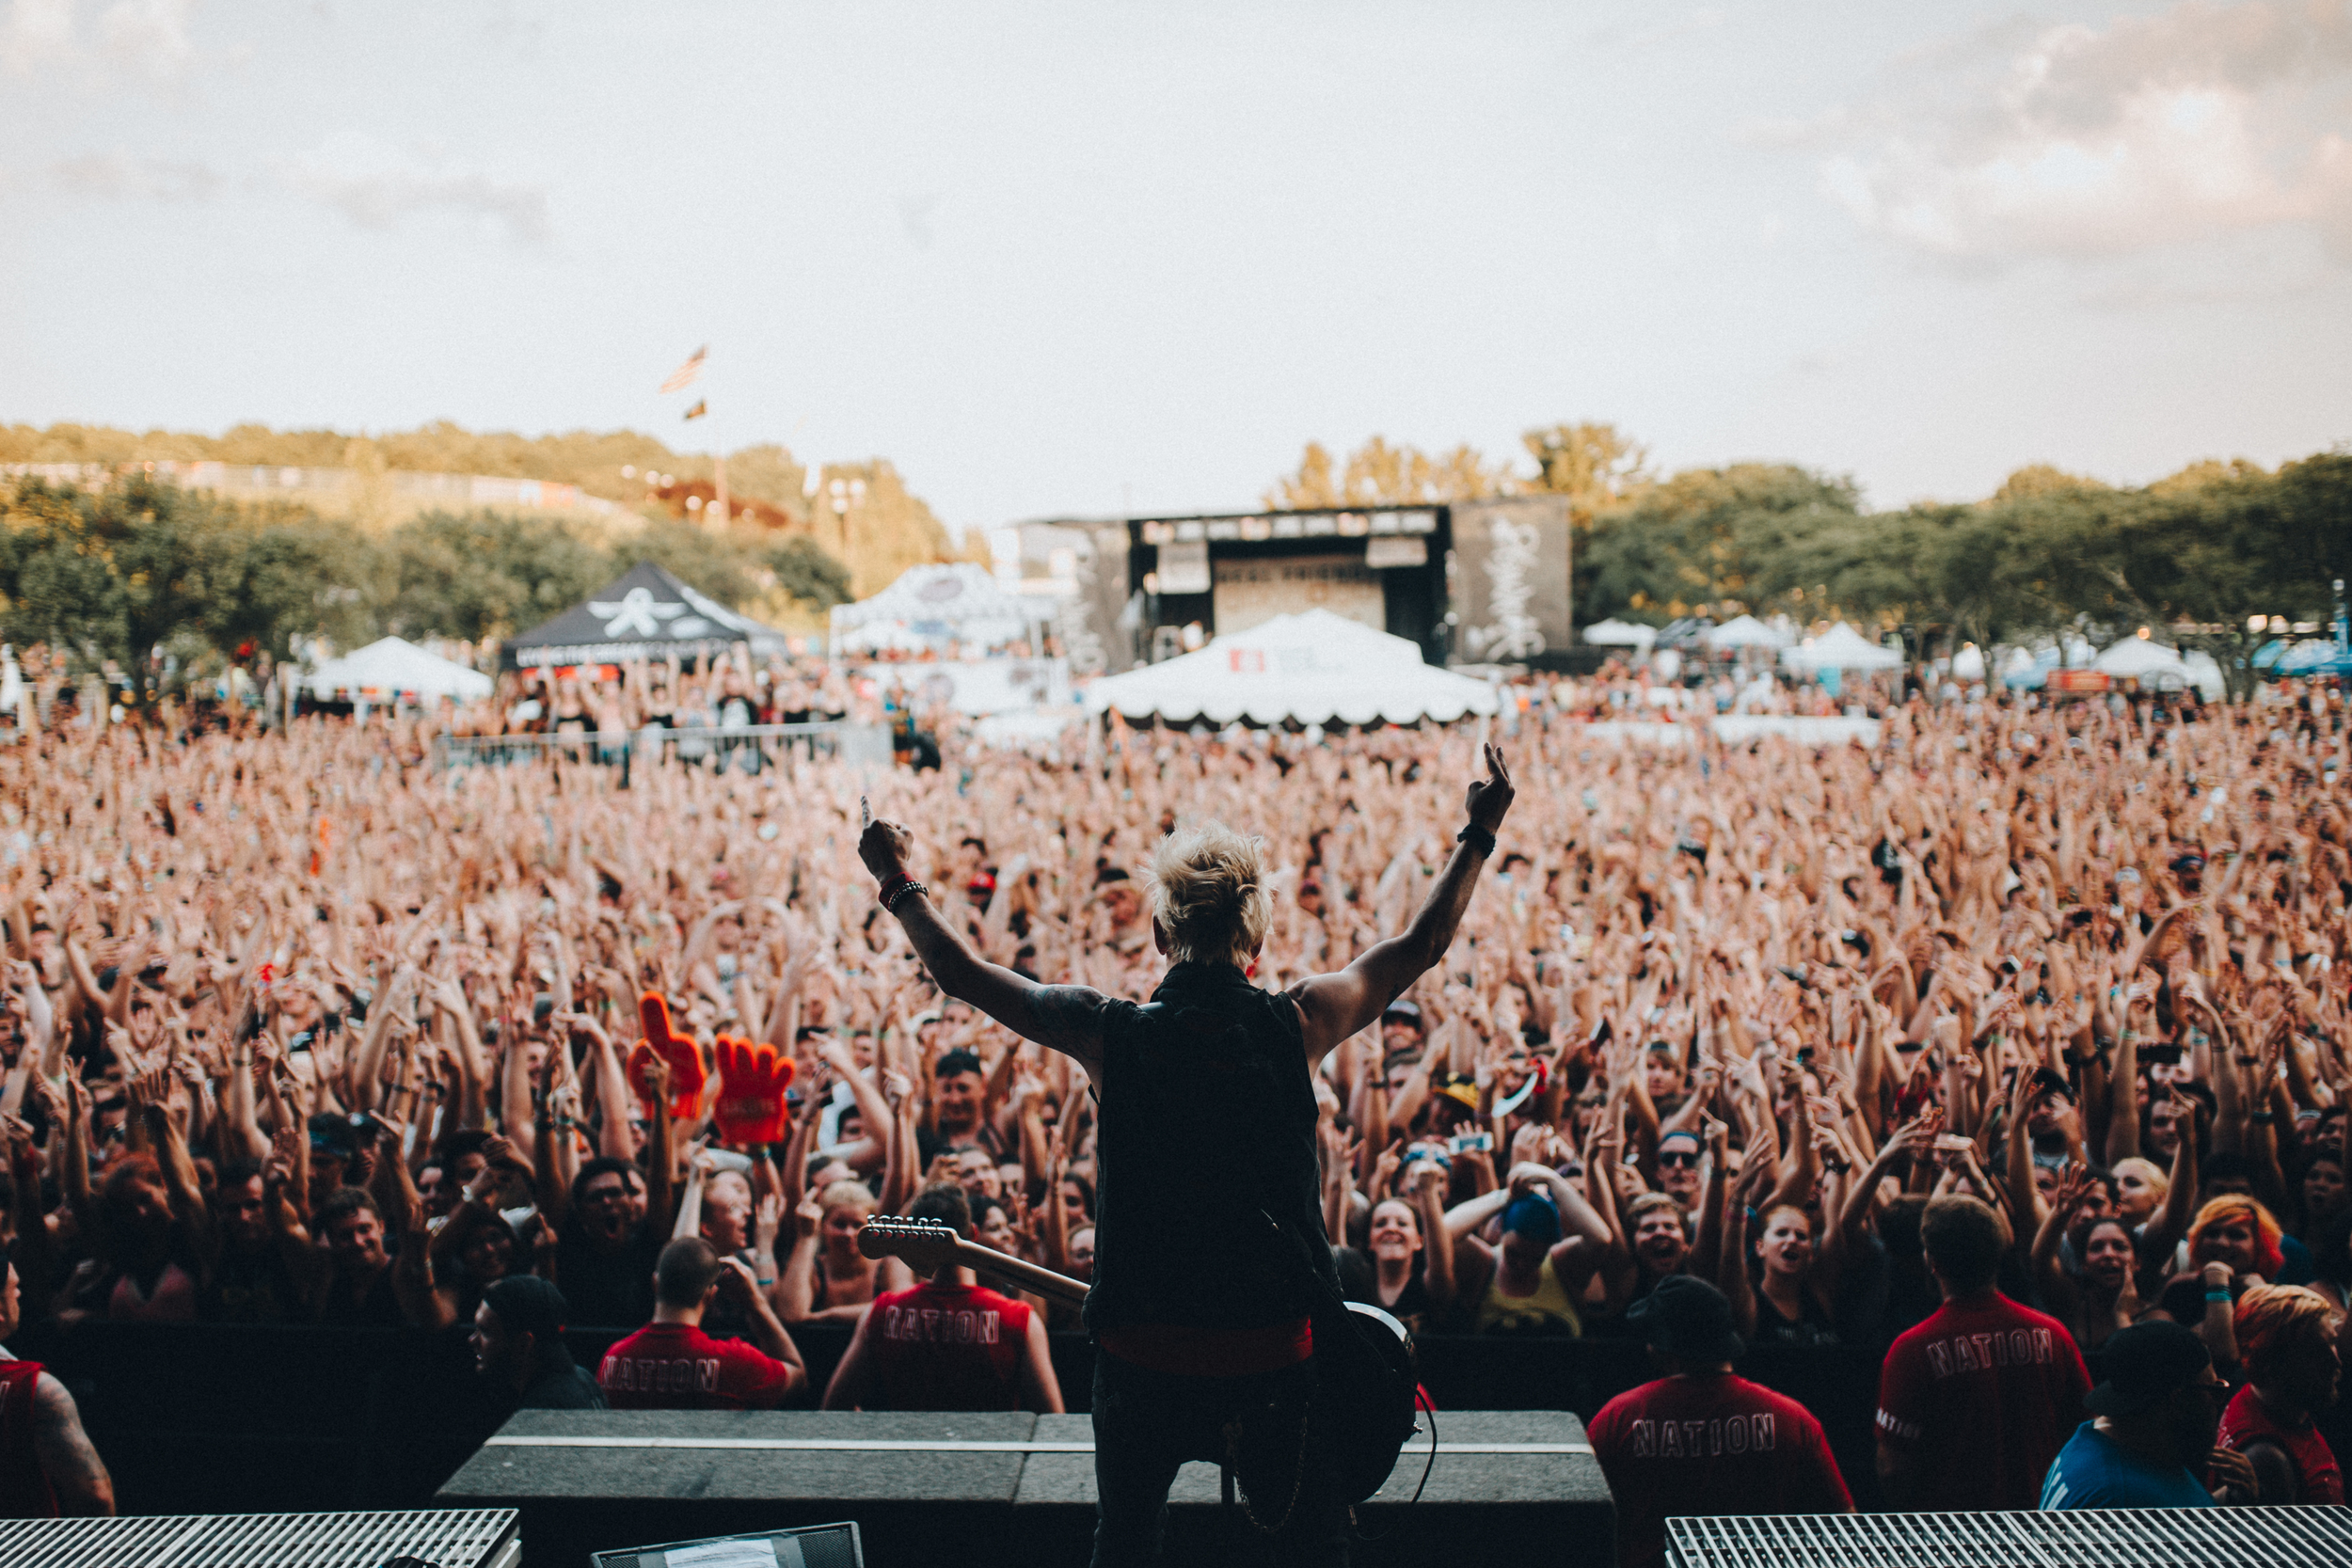 Holmdel, NJ . The Sum 41 salute.  I salute you all my fellow Skumfuks